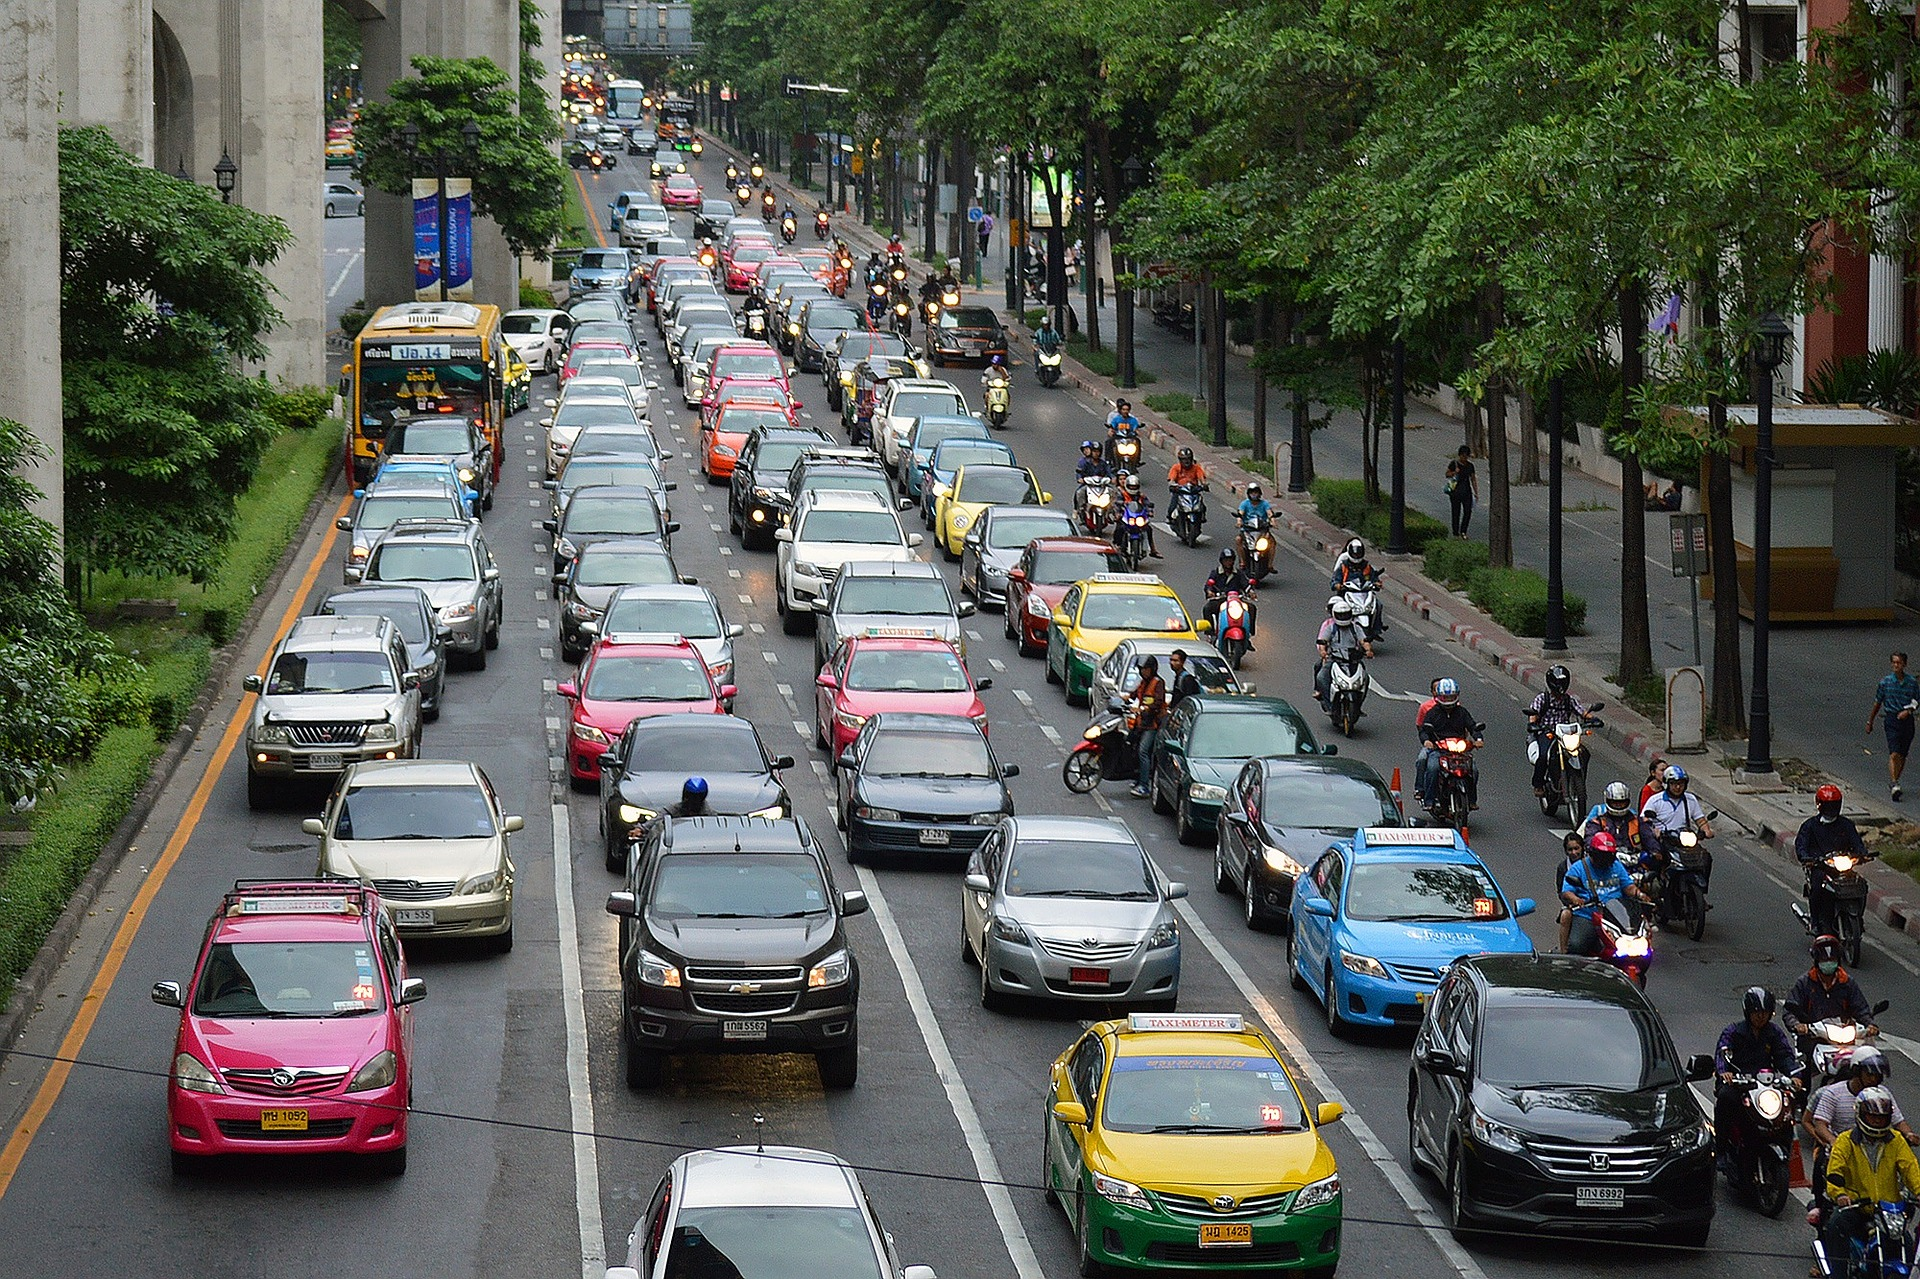 not sitting in traffic jams are a great way to reduce your carbon footprint